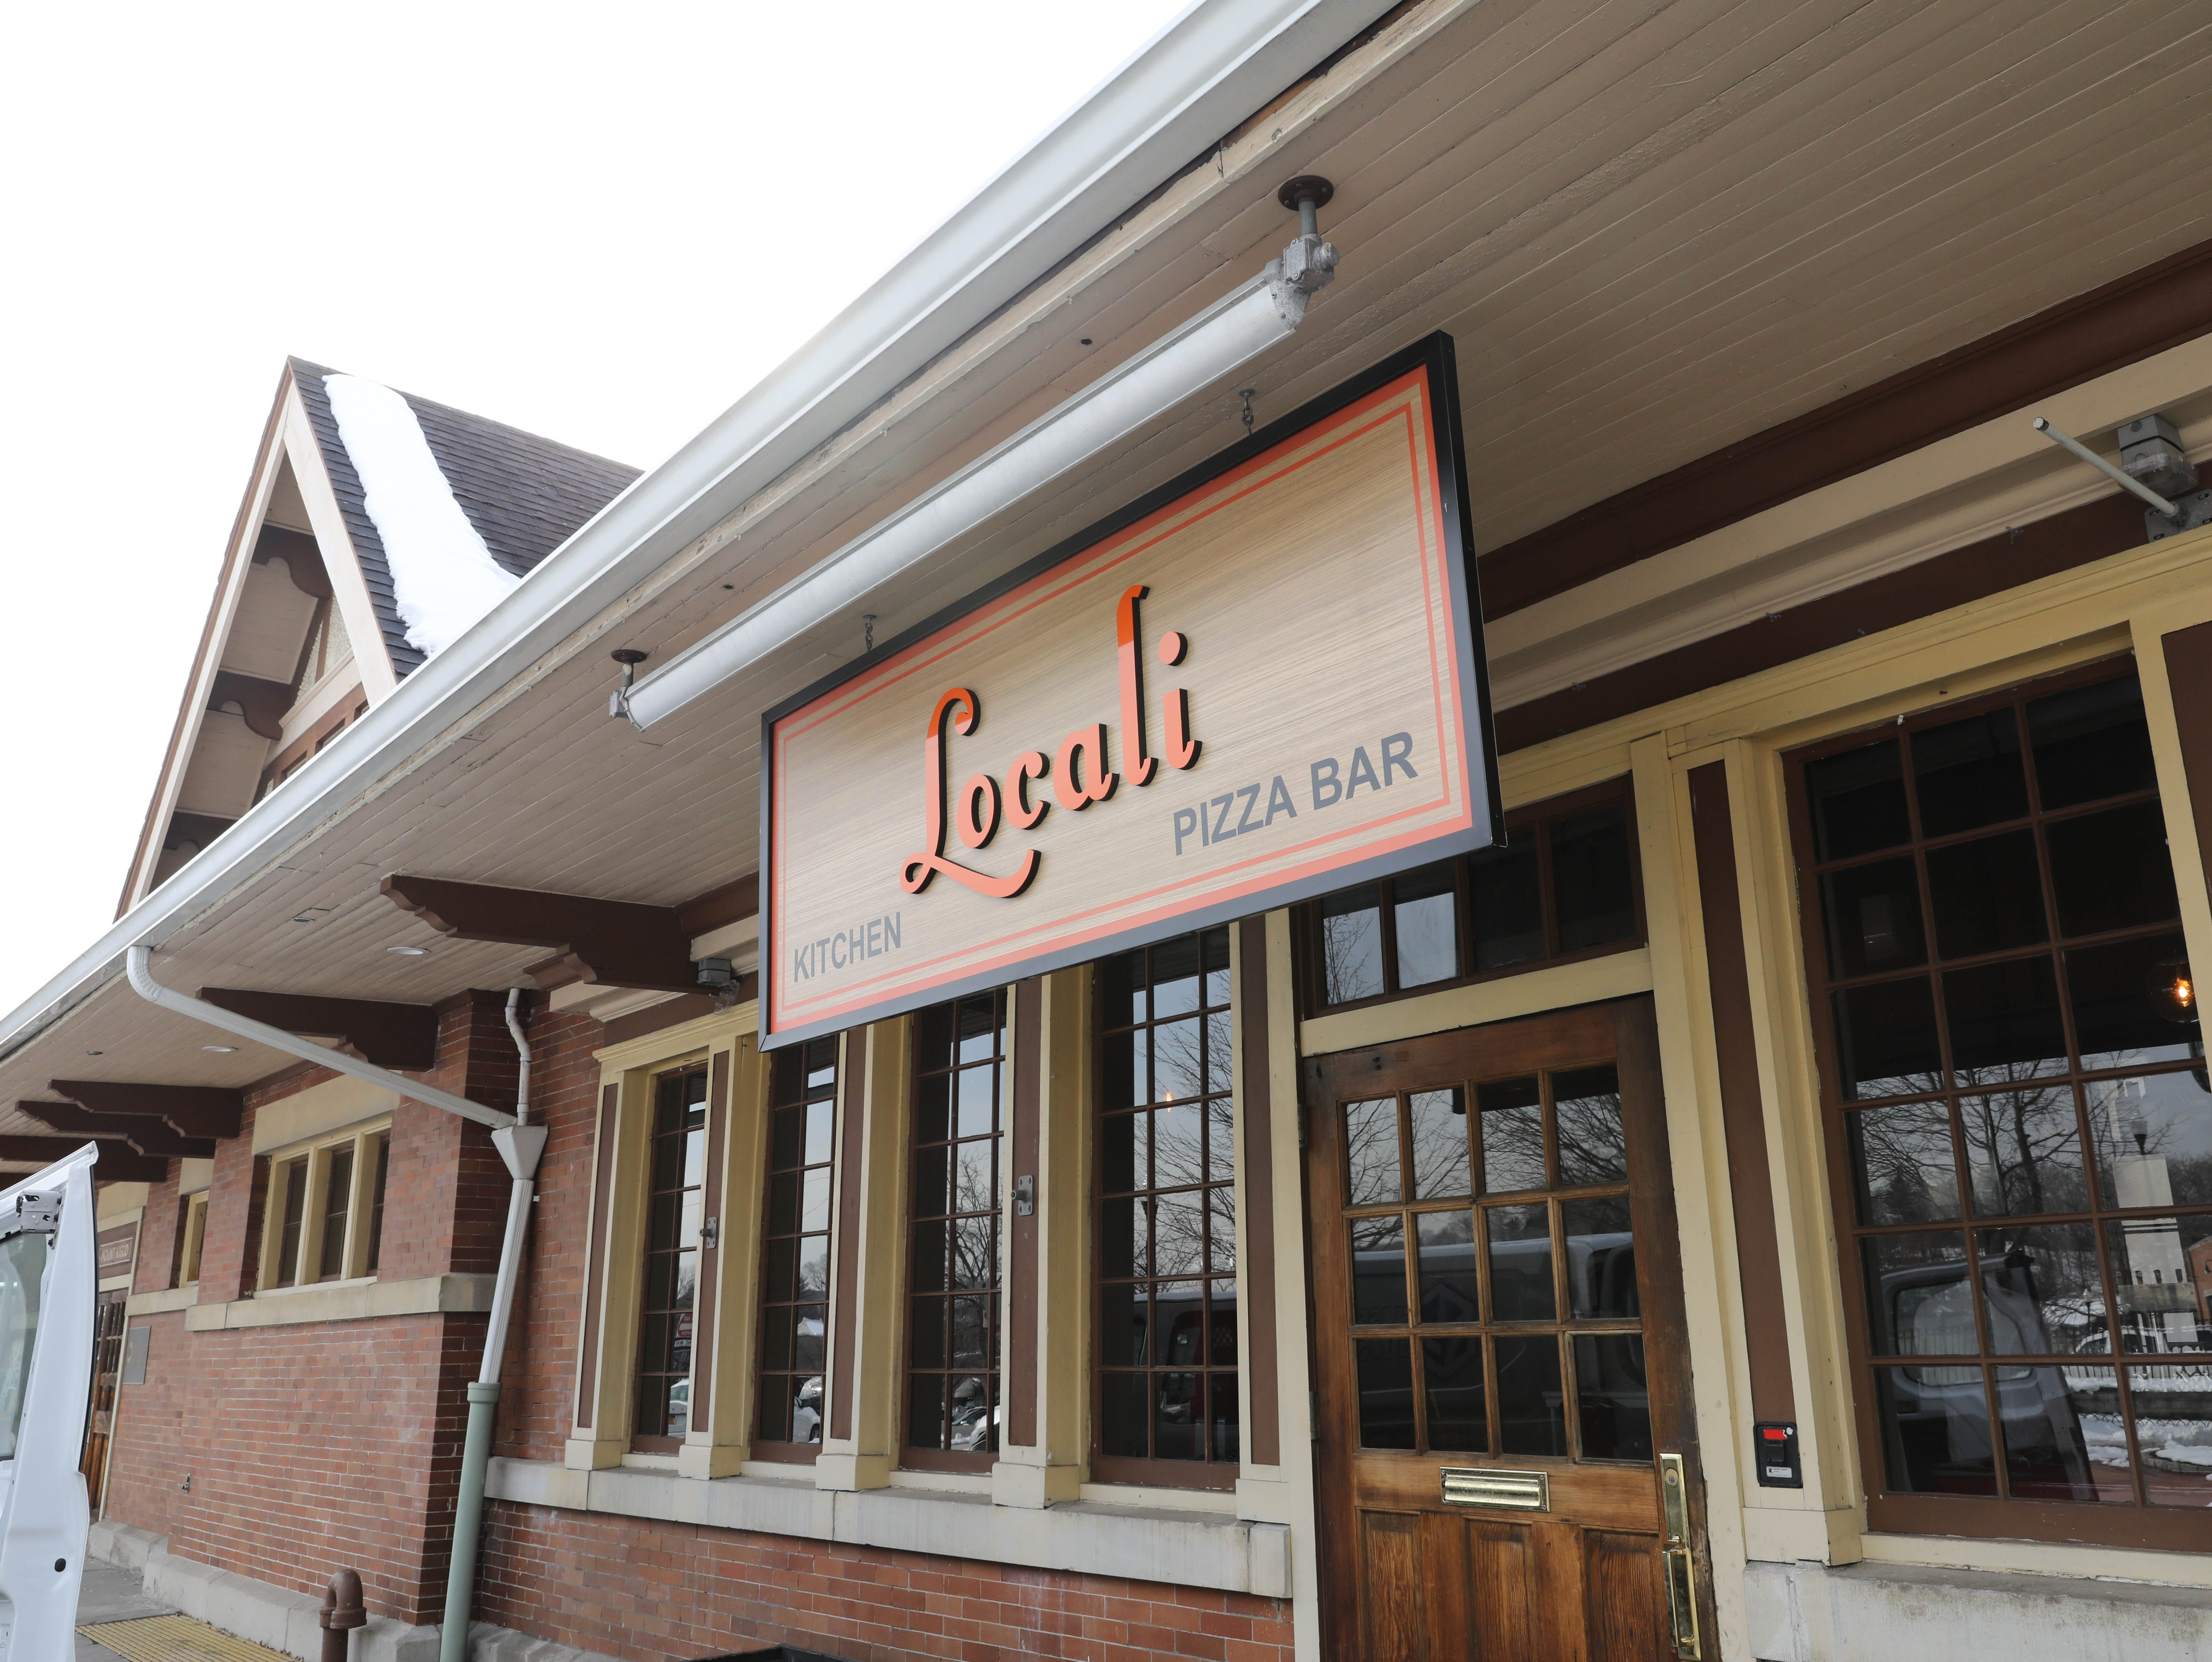 The exterior of Locali Pizza Bar and Kitchen in the Mount Kisco railroad station, March 8, 2019.